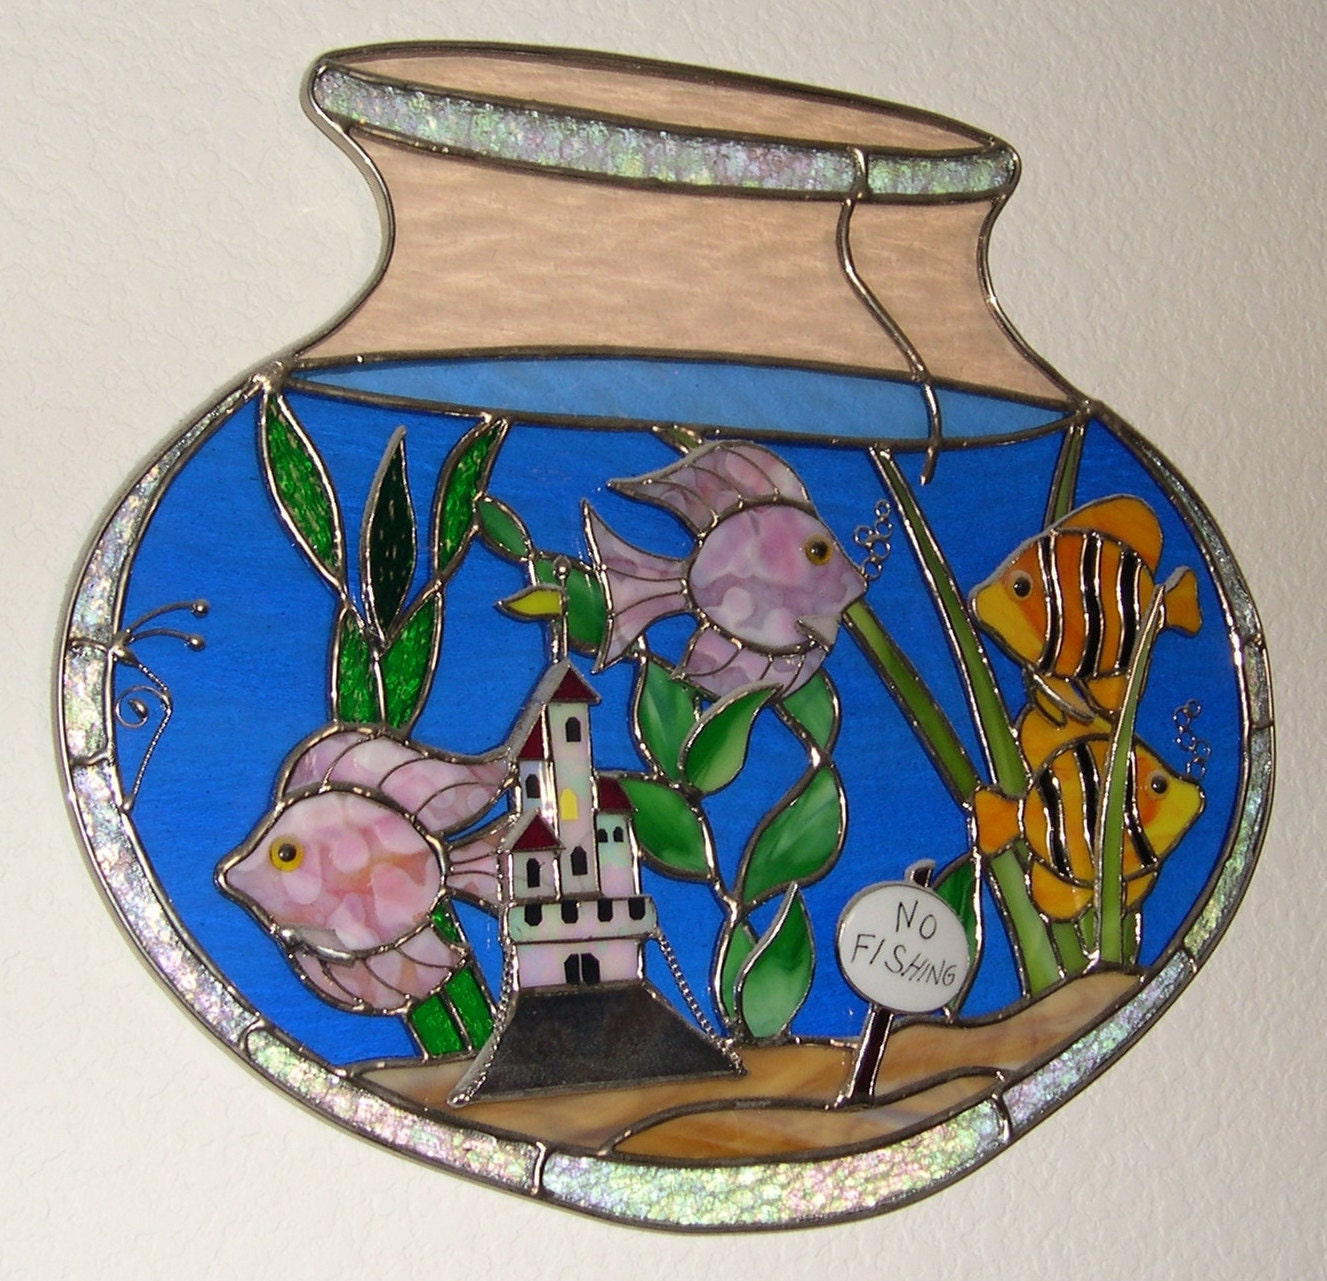 Stained Glass Fish Bowl 3 Dimensional By Stainedglassbywalter